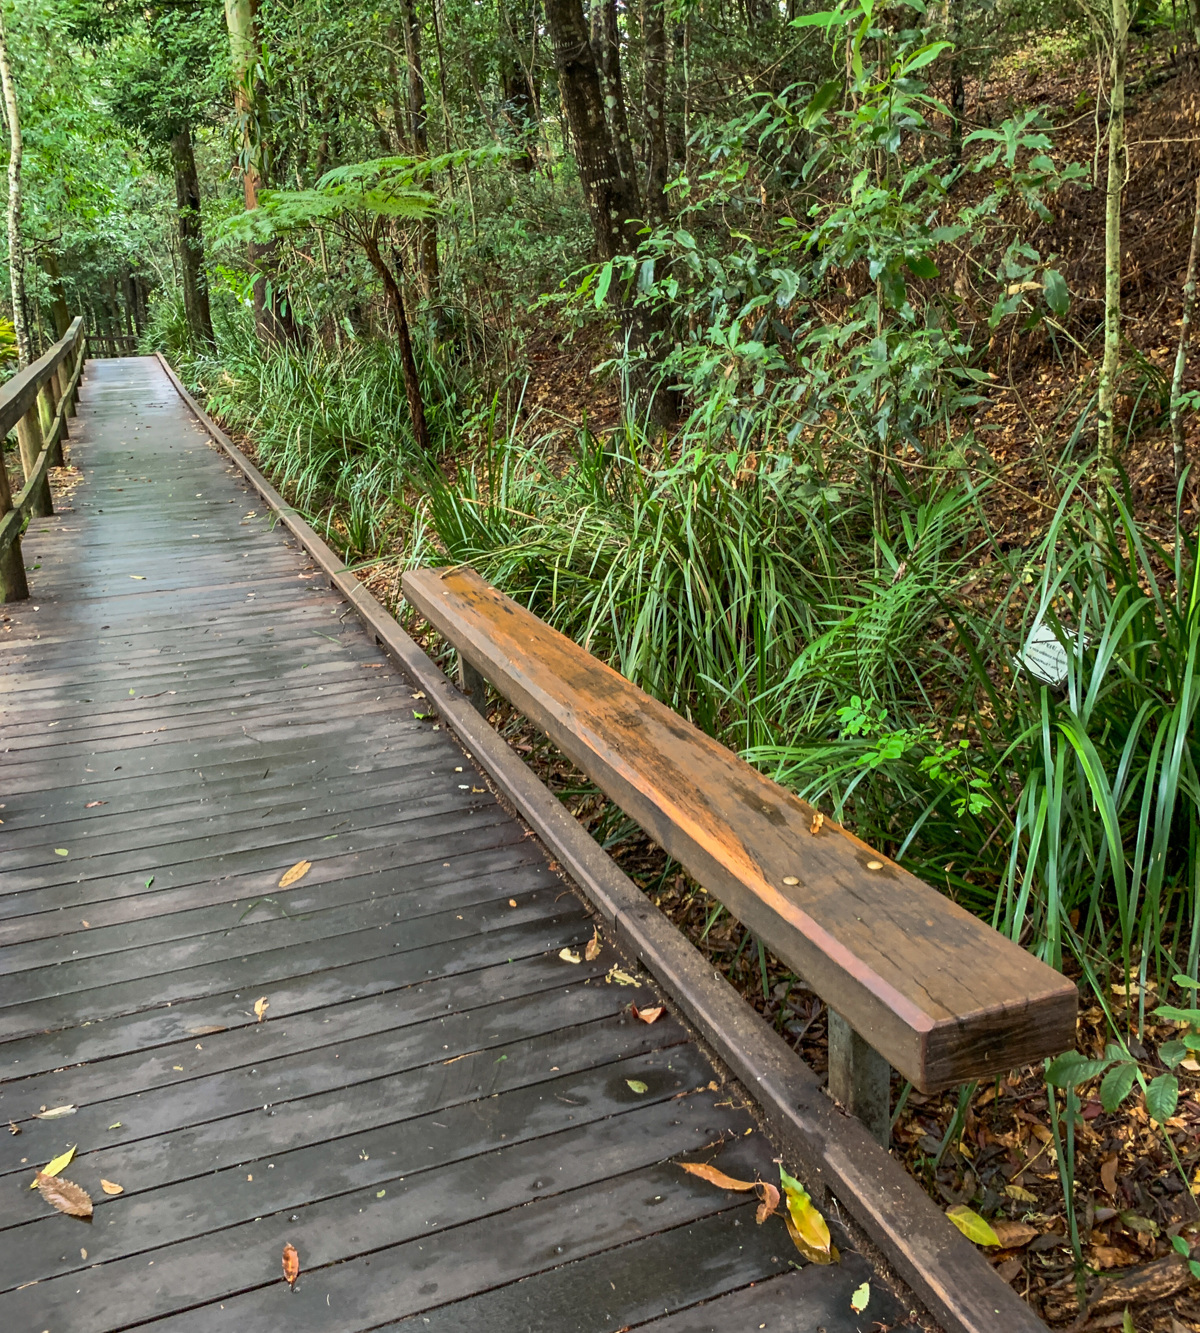 Trail Image for Maleny Boardwalk: Platypus Walk